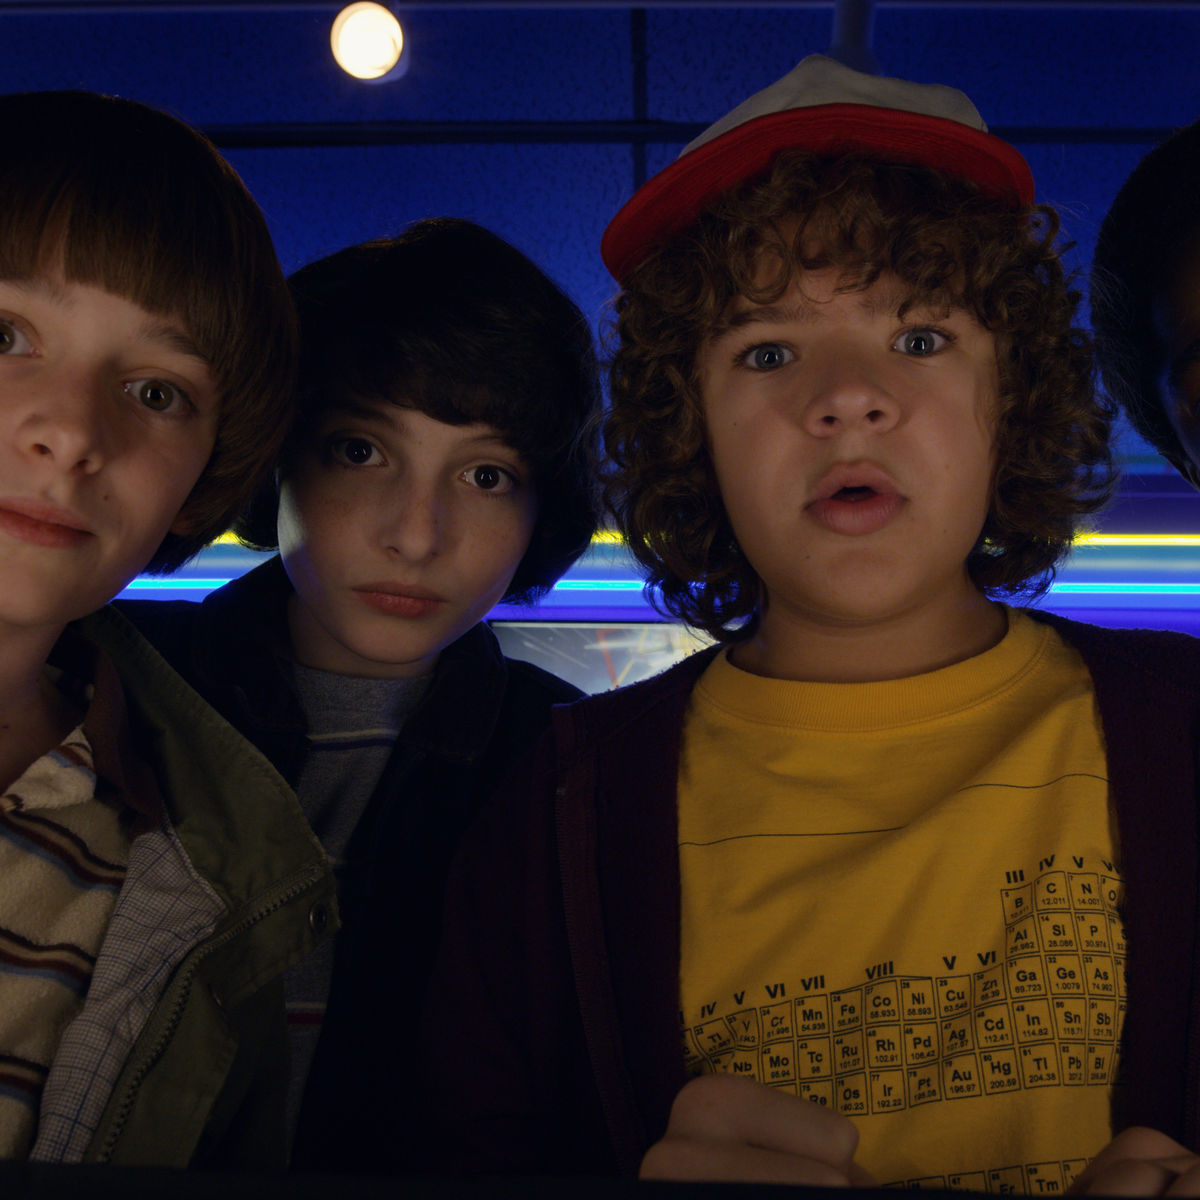 'Stranger Things' Drops Premiere Date With Creepy New Year's Eve Countdown